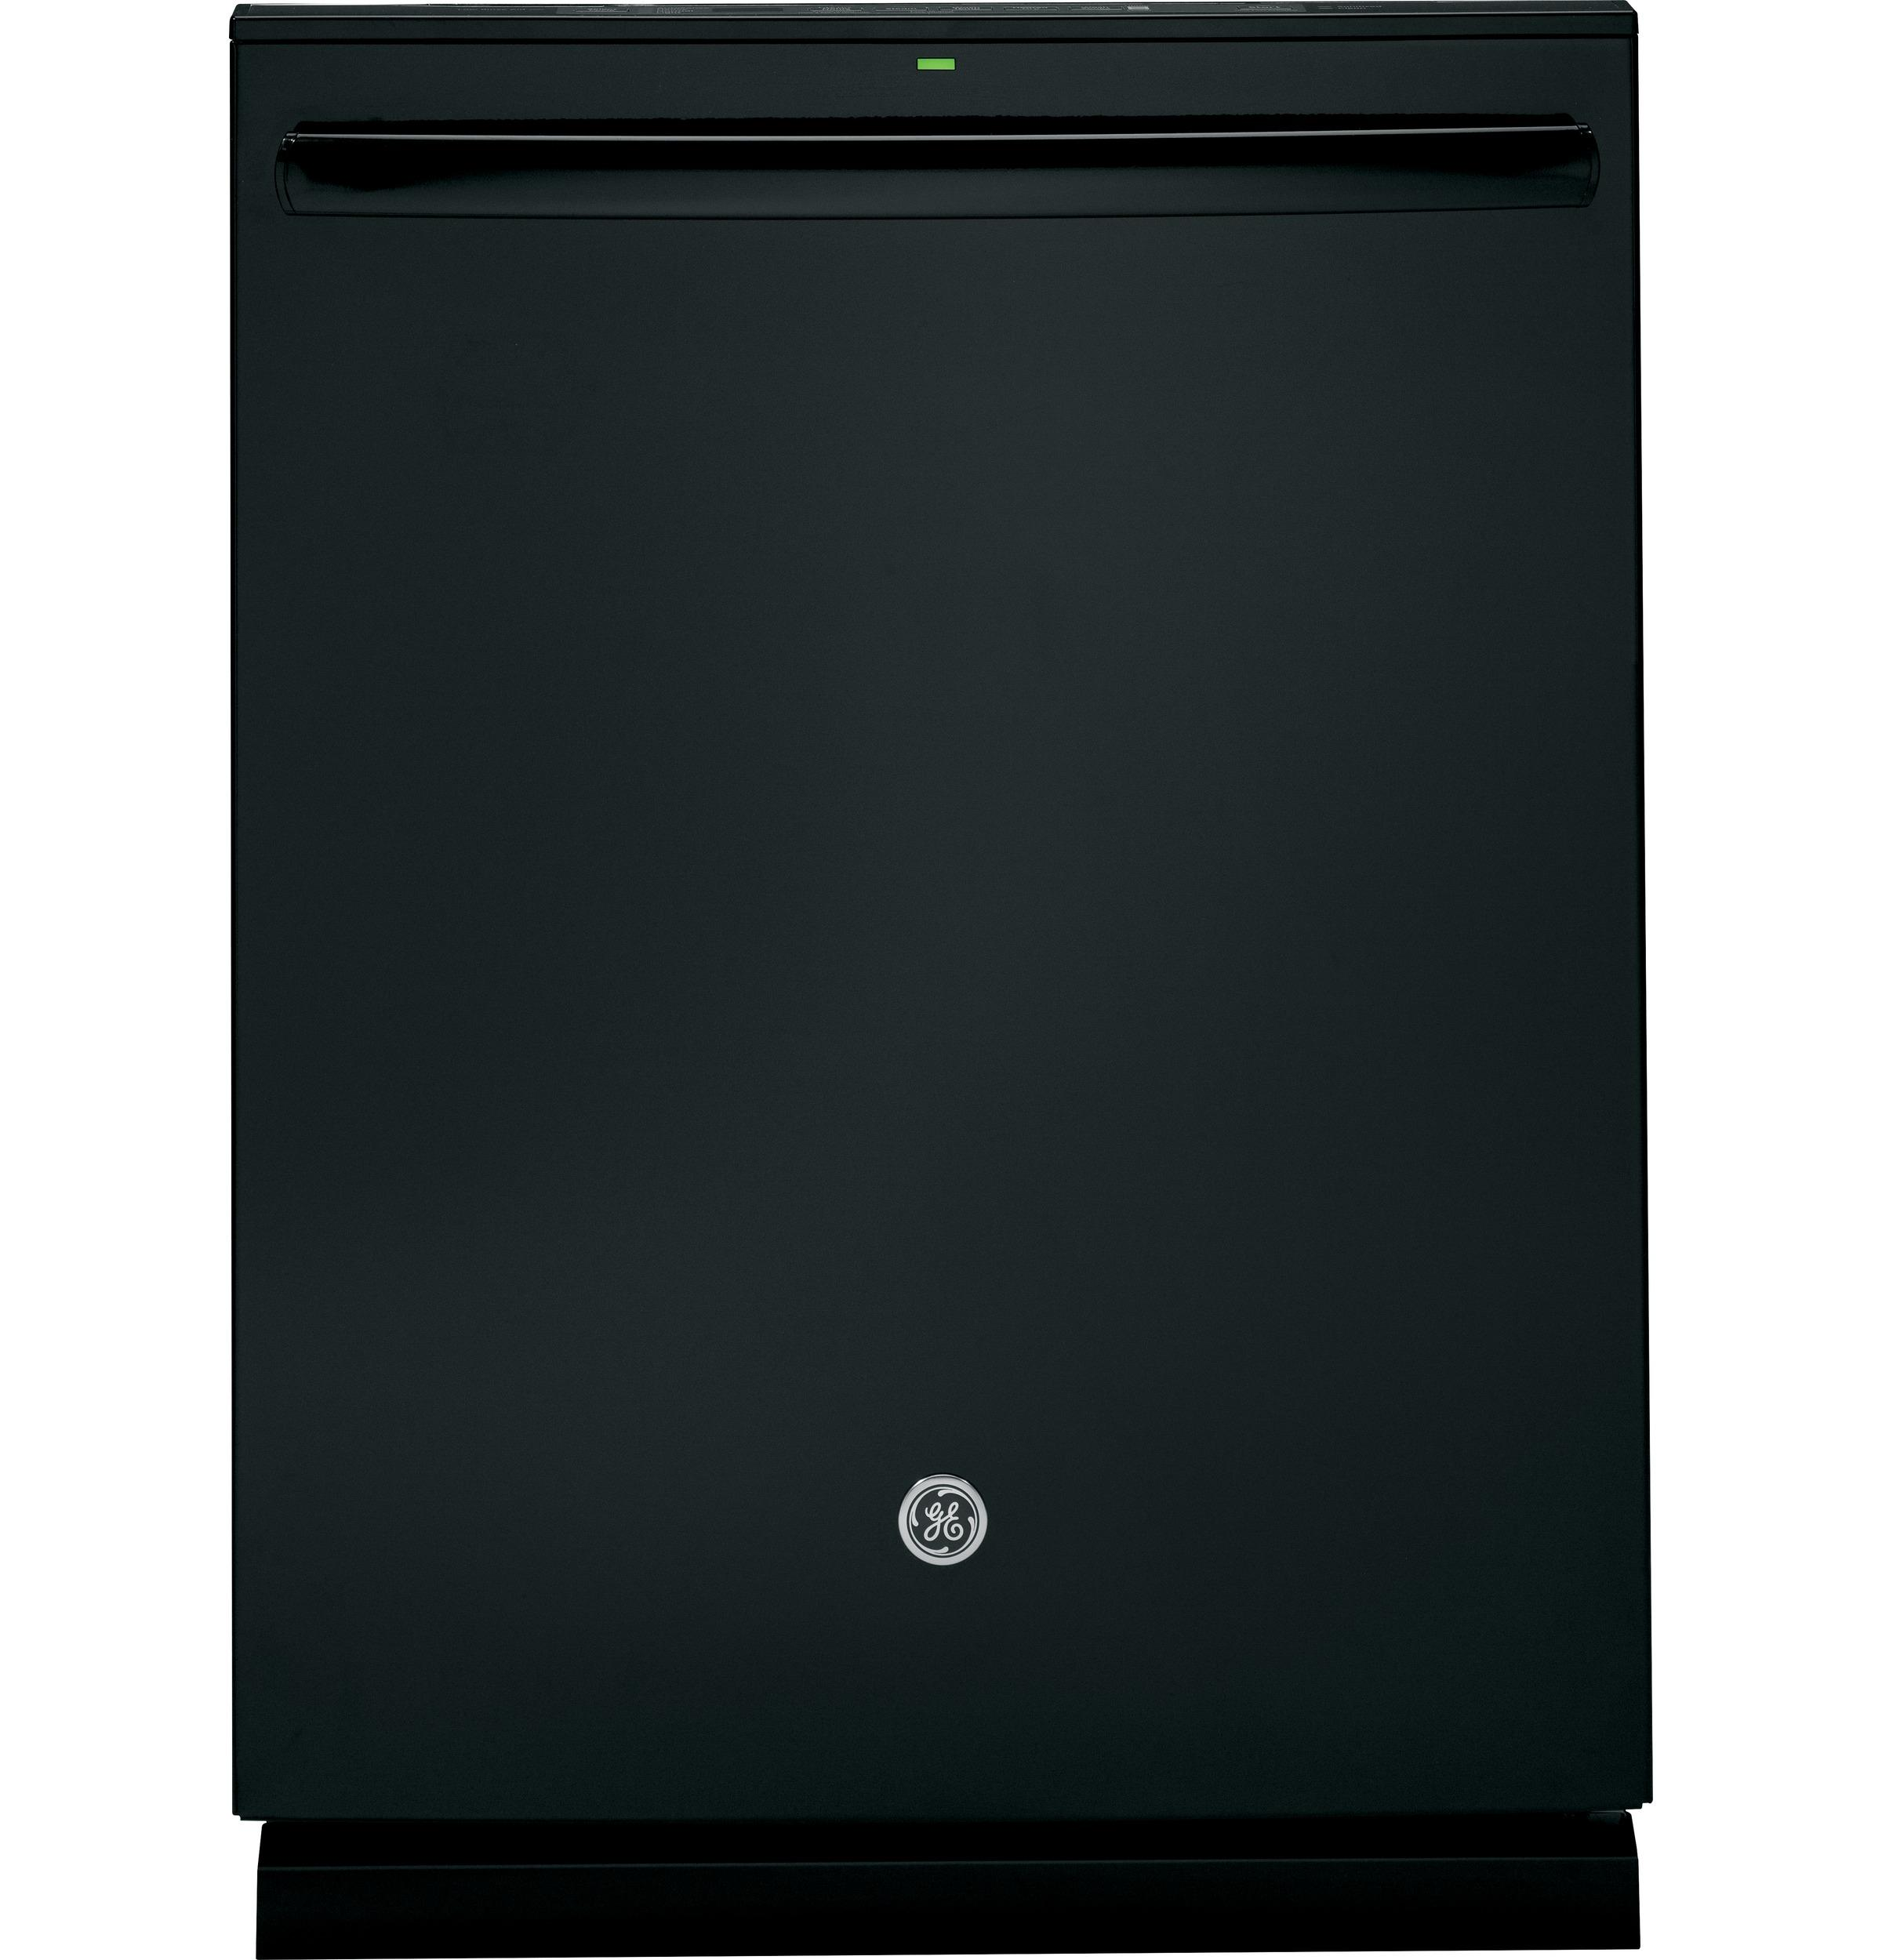 Ge Profile Stainless Steel Interior Dishwasher With Hidden Controls Built In Dishwashers